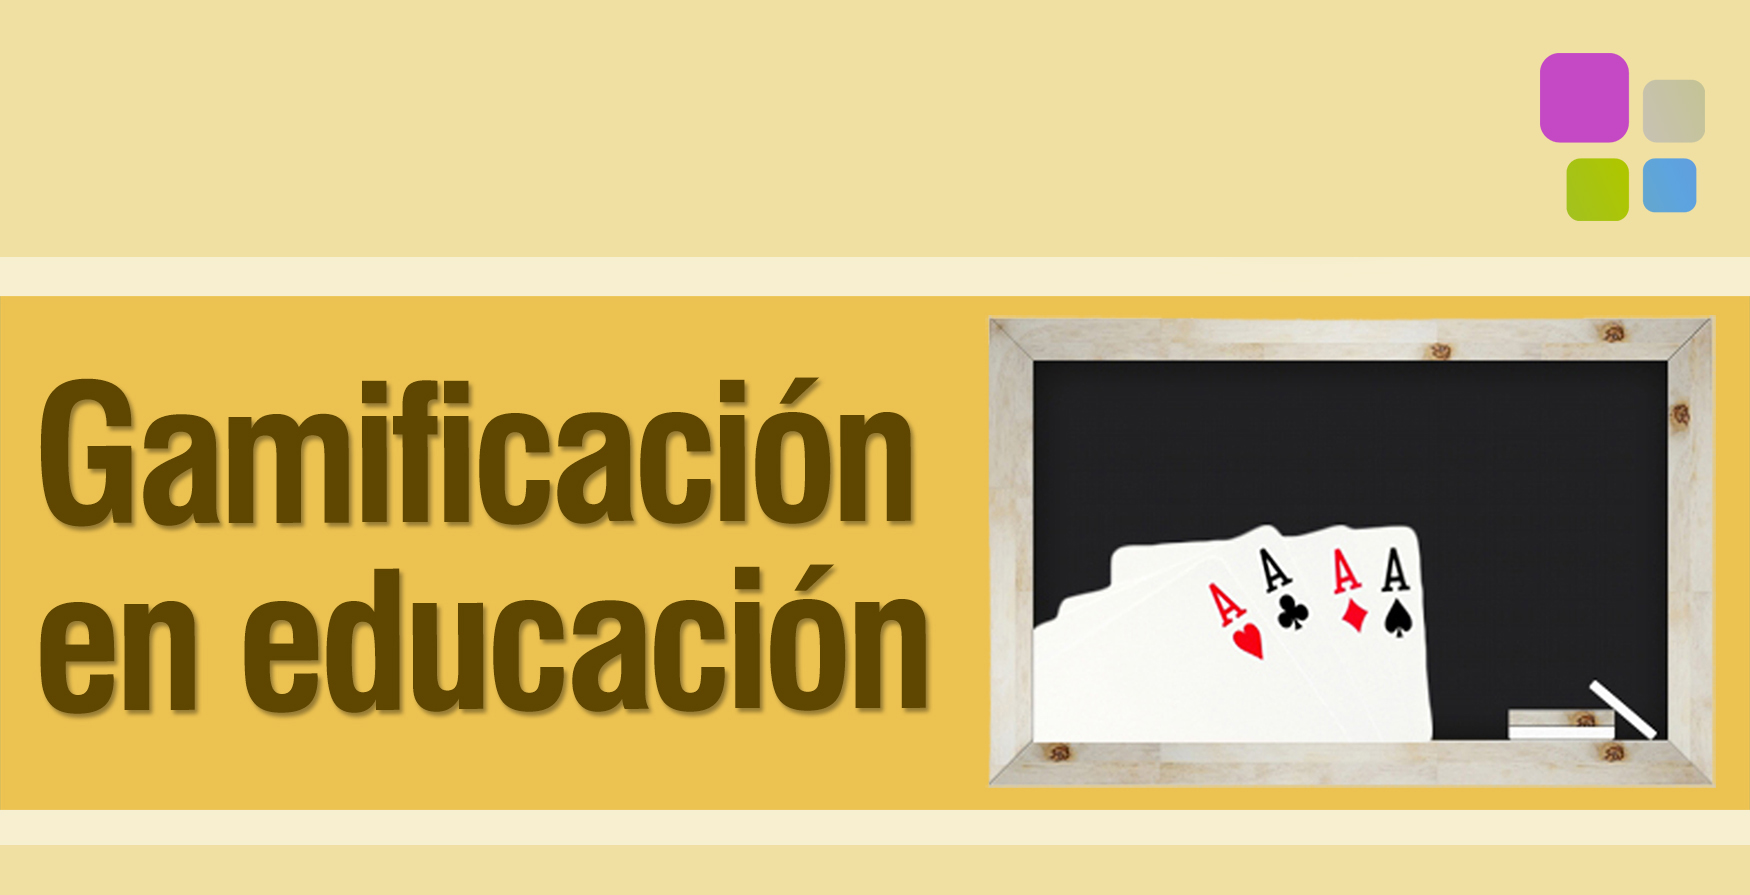 gamification en entornos educativos